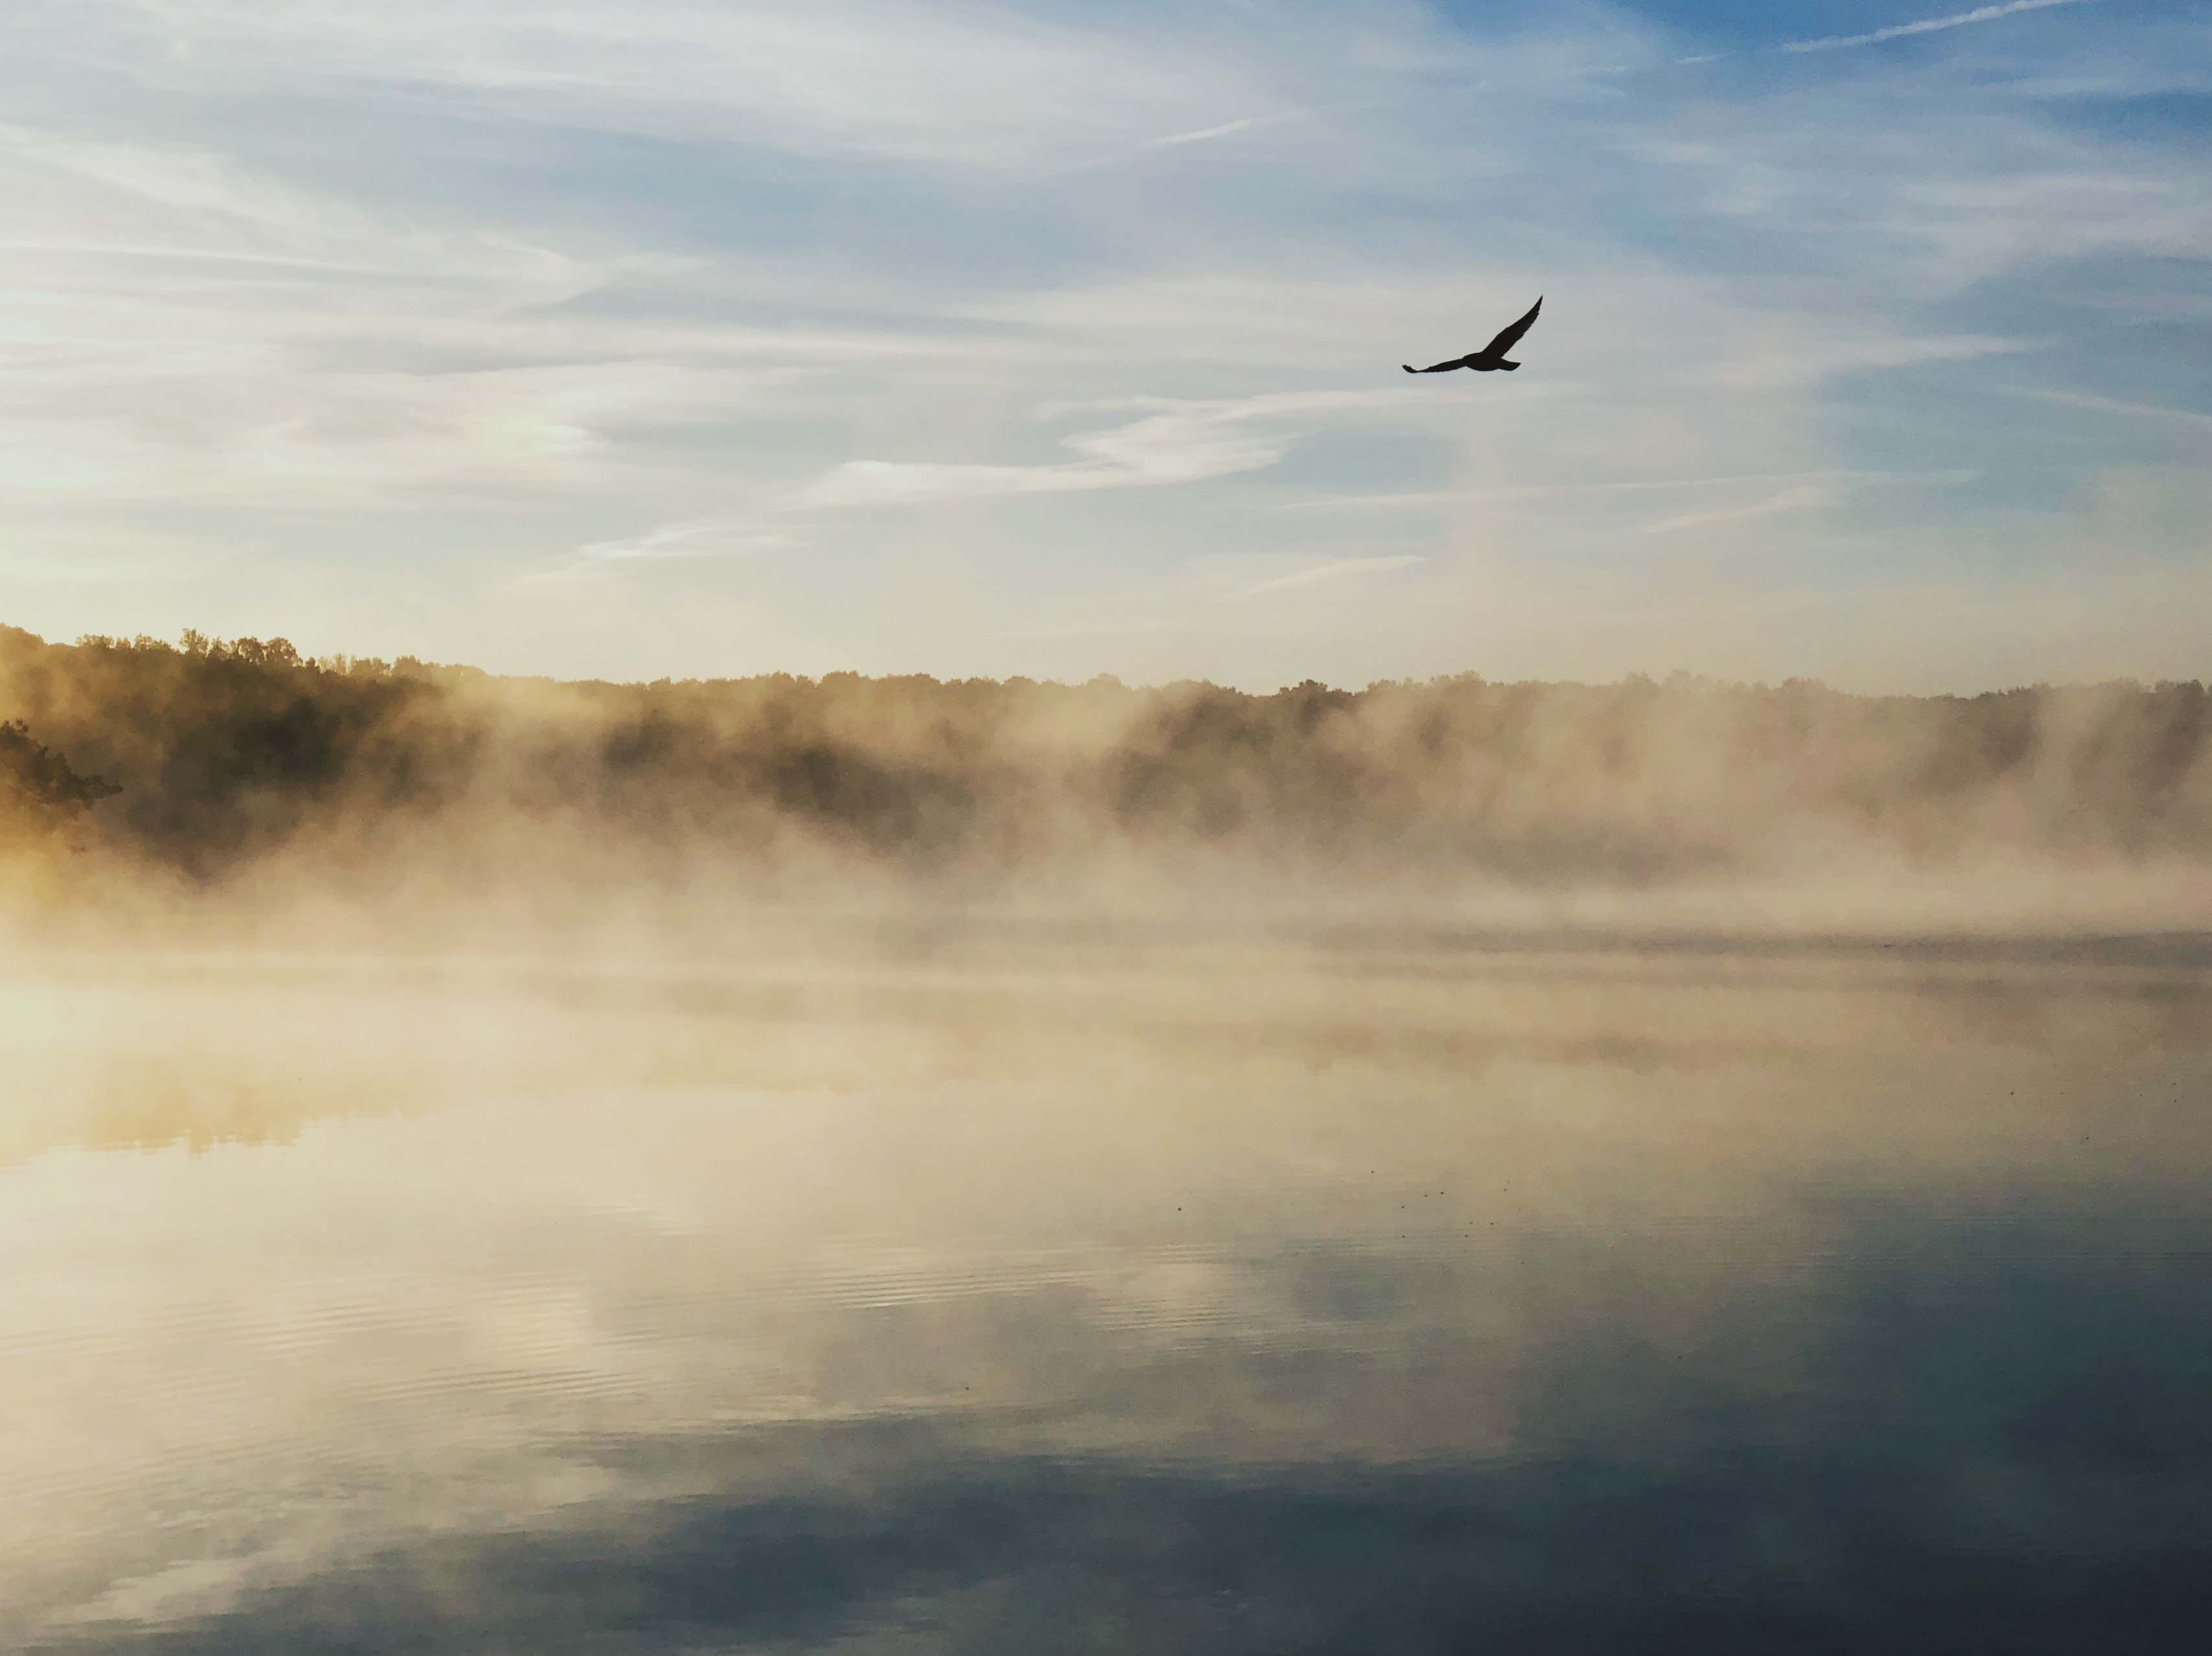 eagle gliding near fogging lake